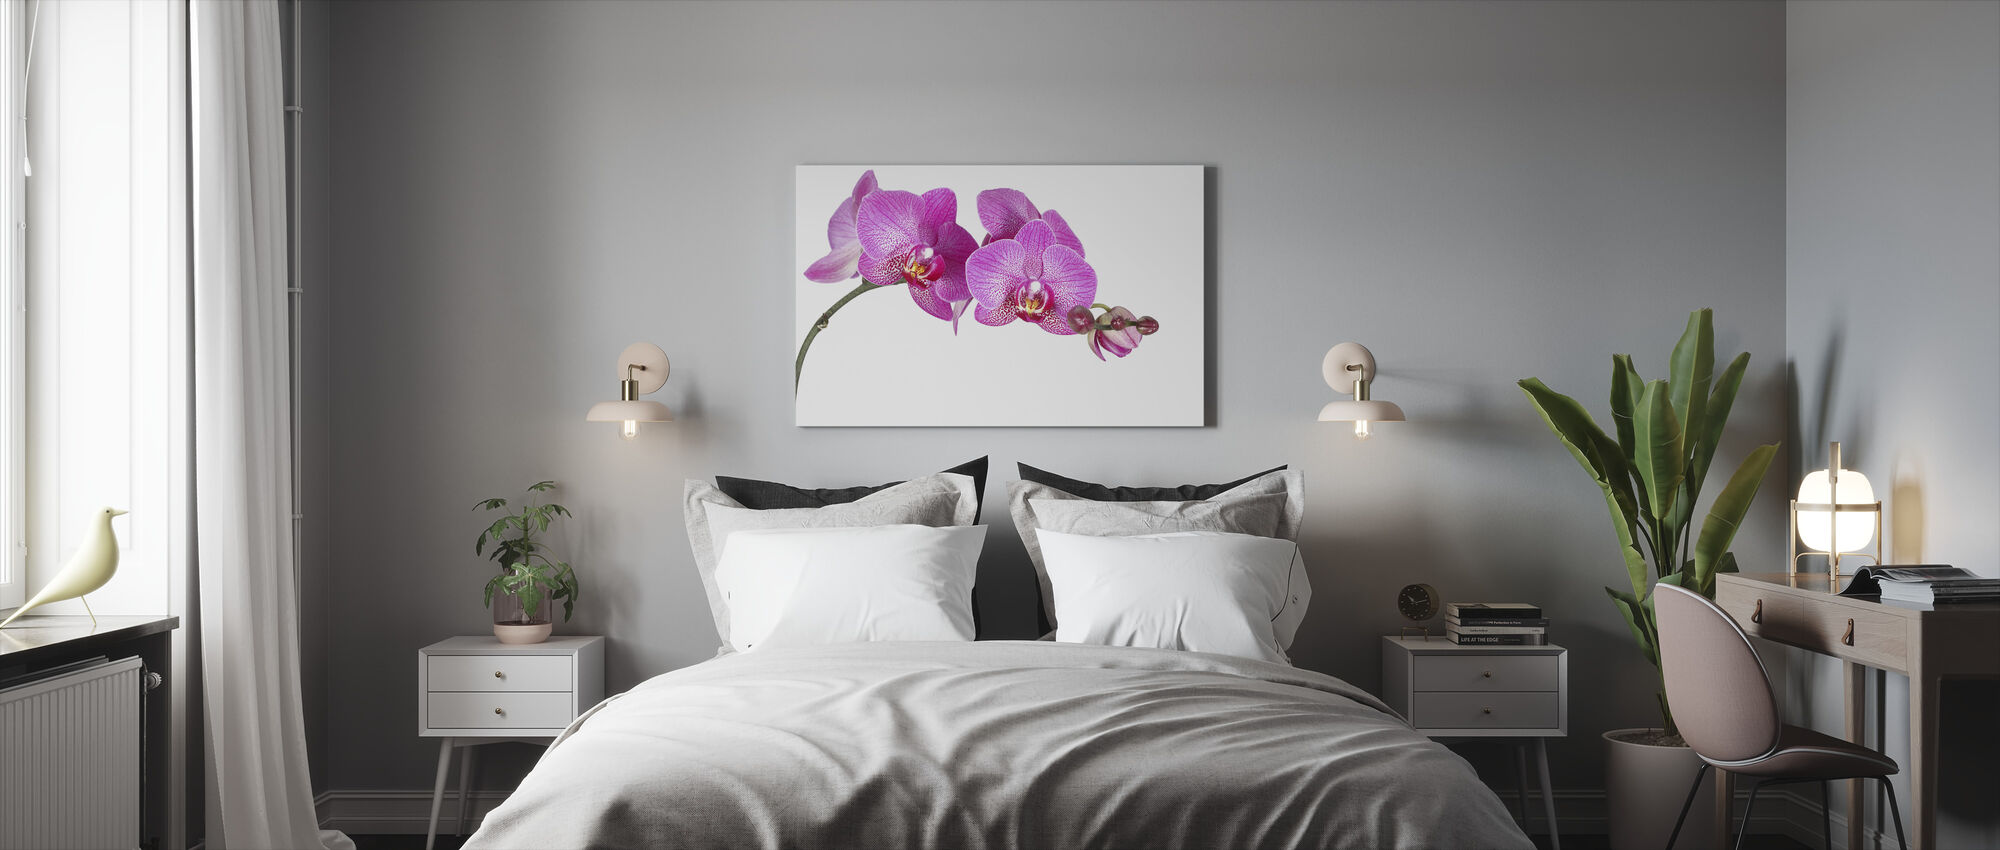 Innocent Orchid - Canvas print - Bedroom